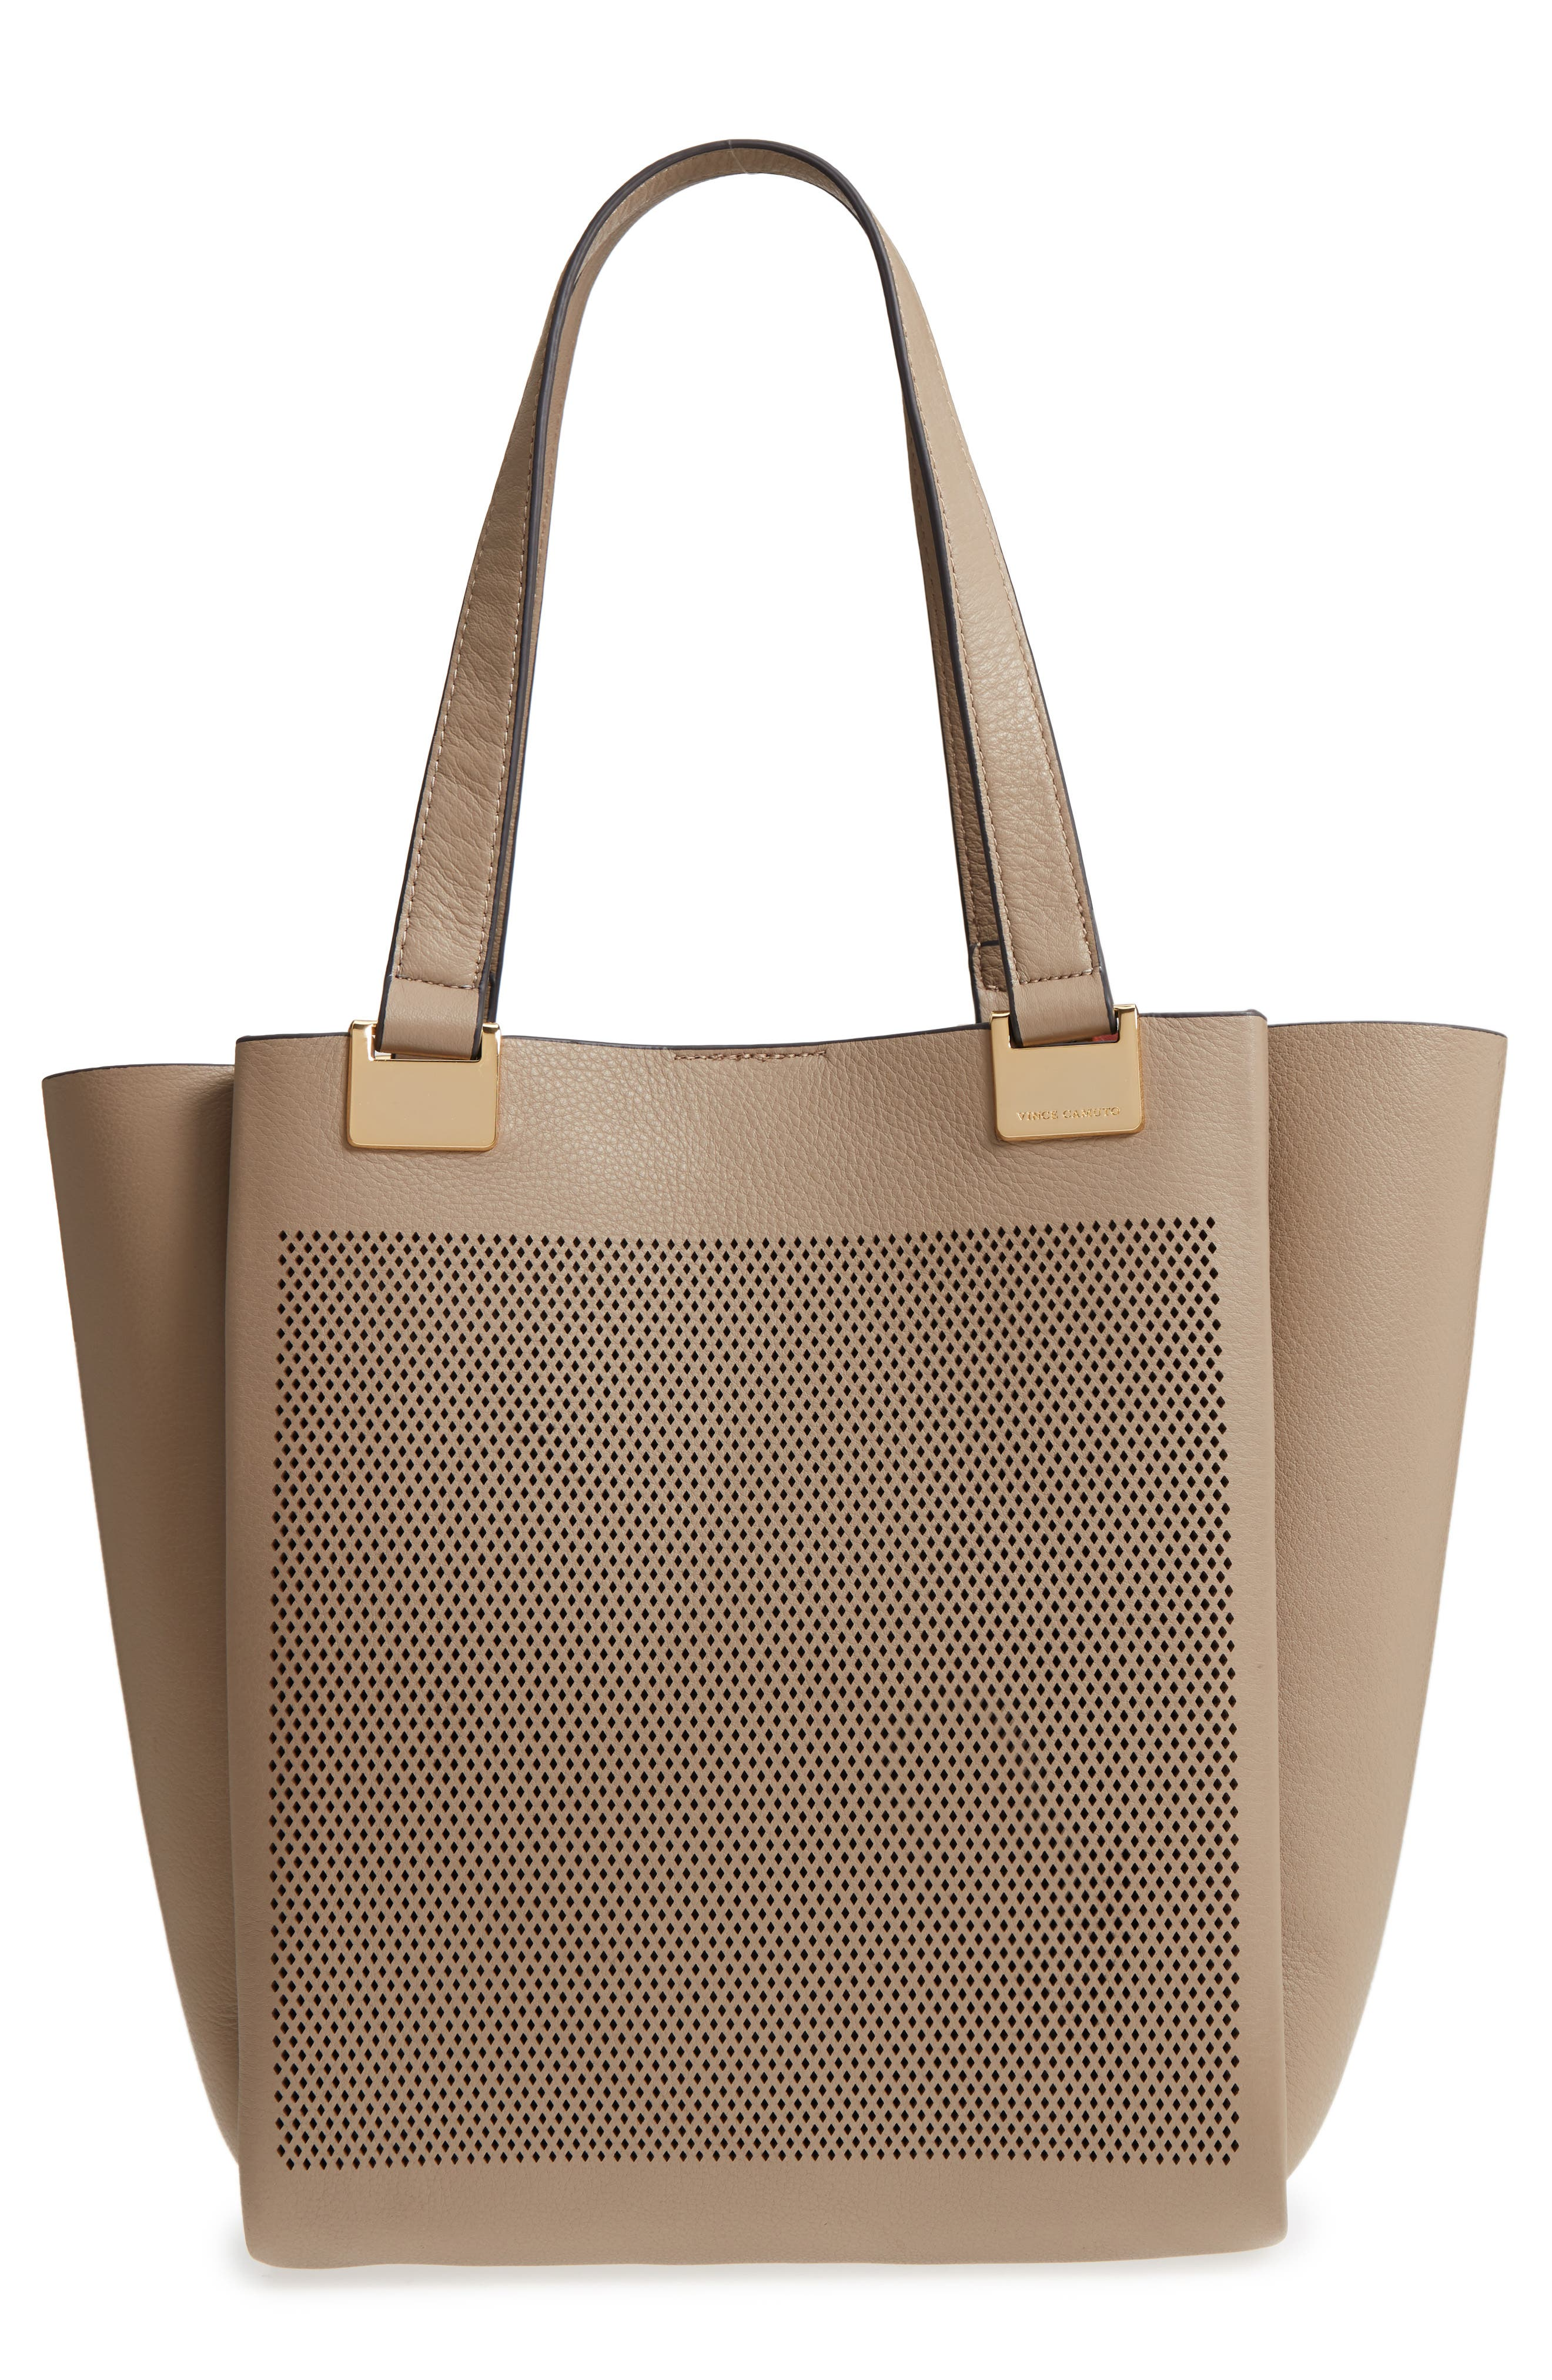 Beatt Perforated Leather Tote,                             Main thumbnail 1, color,                             Kangaroo/ Sushi